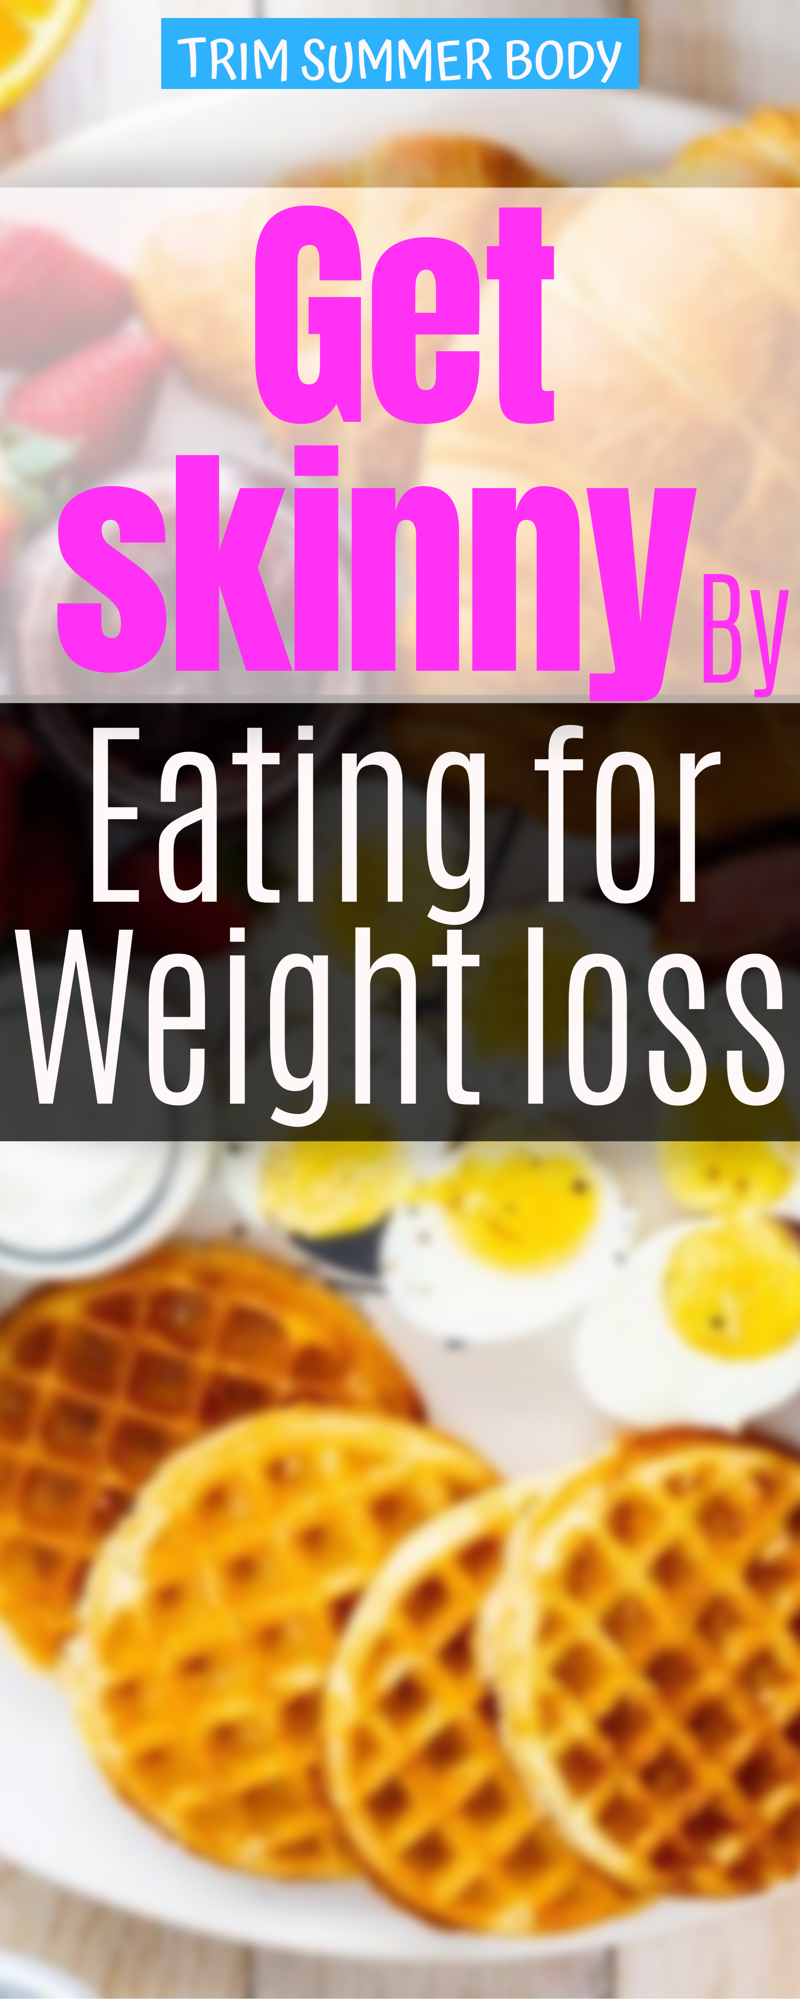 Eating for weight loss - 4 Tips to healthy eating for weight loss These is Clean eating for weightloss, healthy eating to lose weight, cleanse eating for beginner, fat burning to burn belly fat.